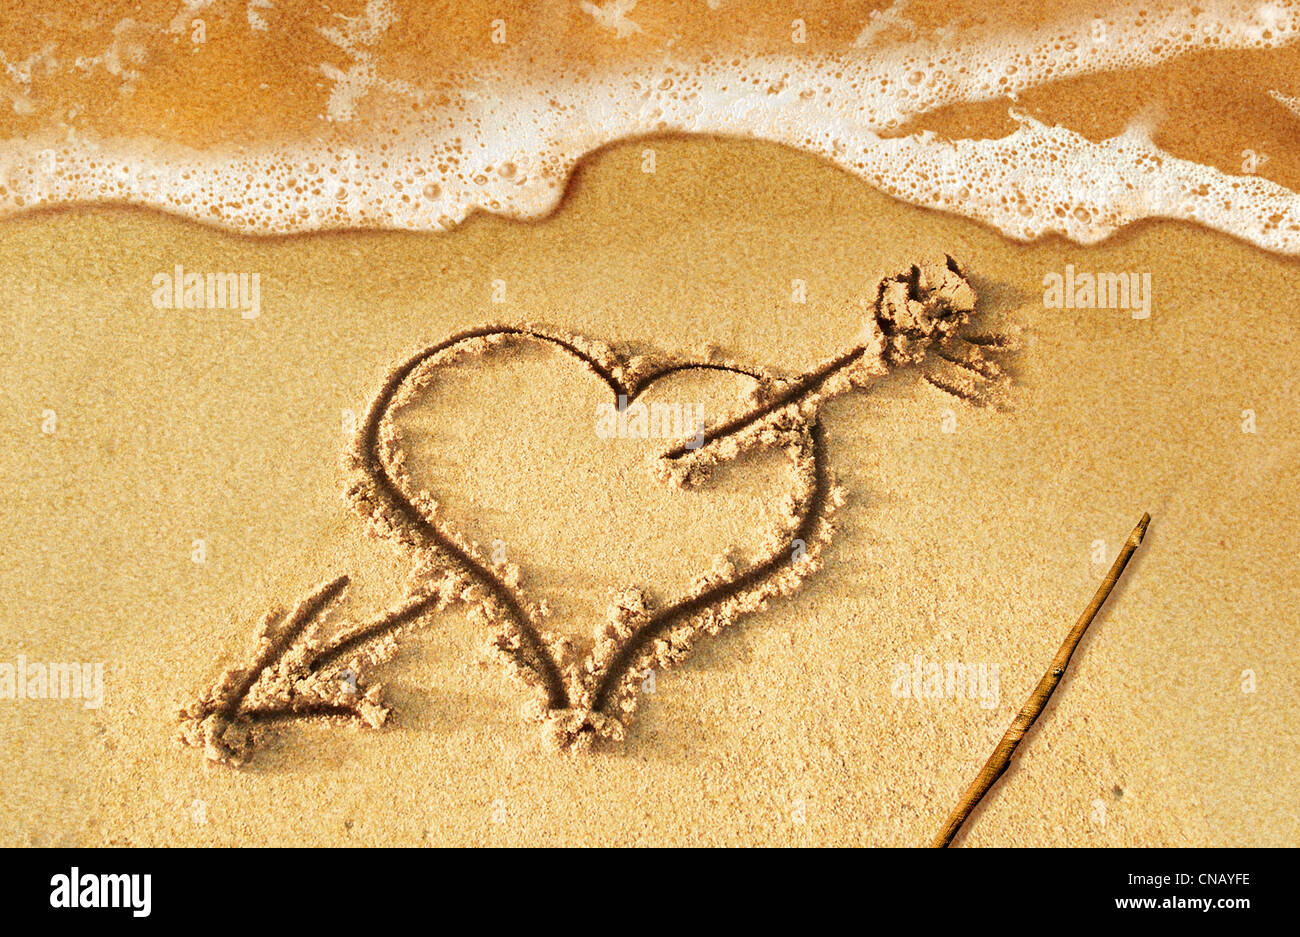 heart with arrow, as love sign, drawn on the beach shore, with some